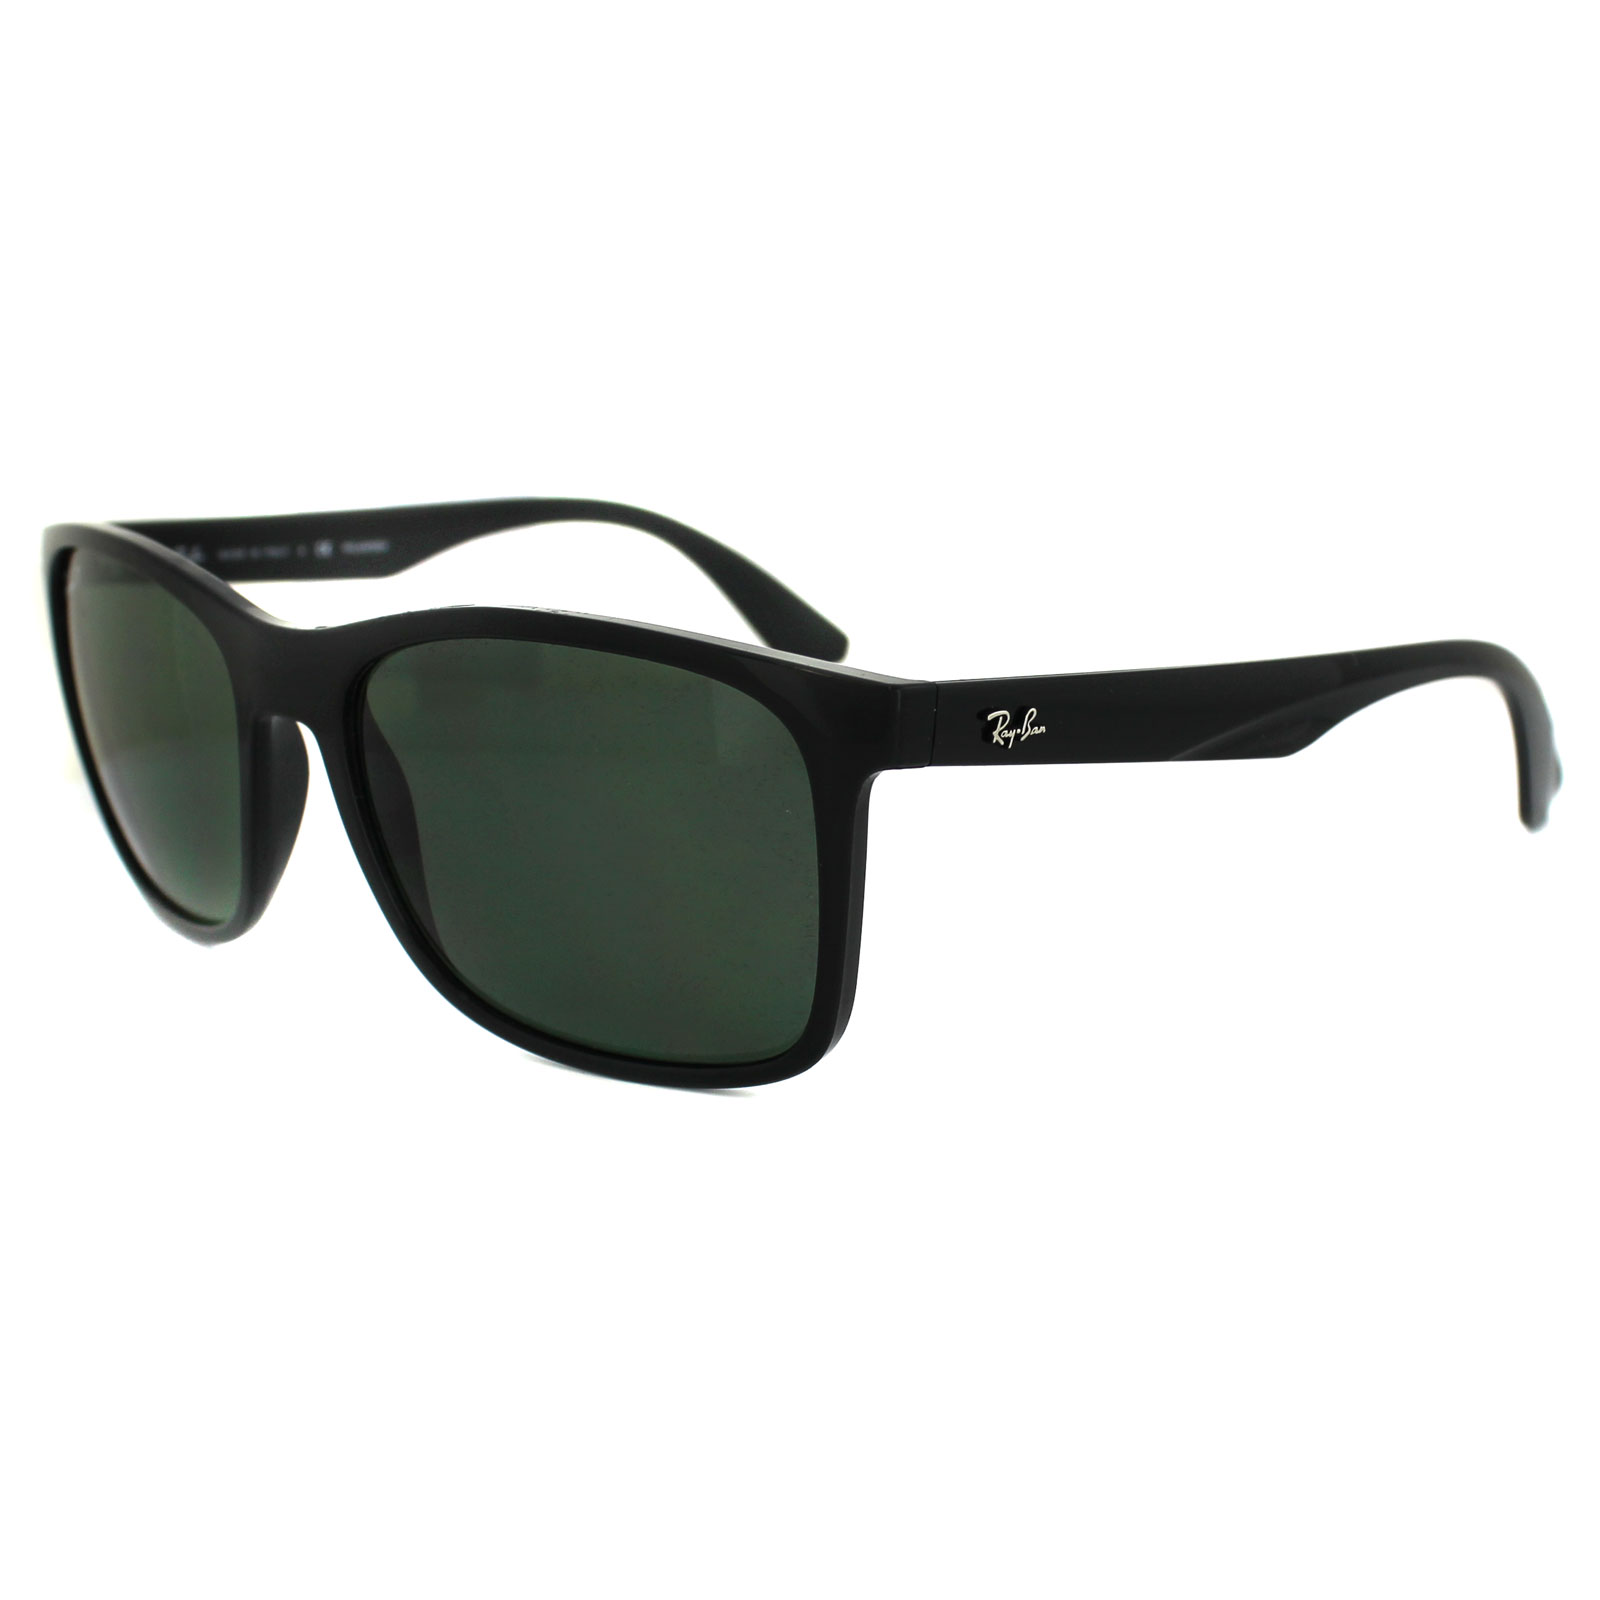 e0bb868df1a Details about Ray-Ban Sunglasses 4232 601 9A Black Green Polarized